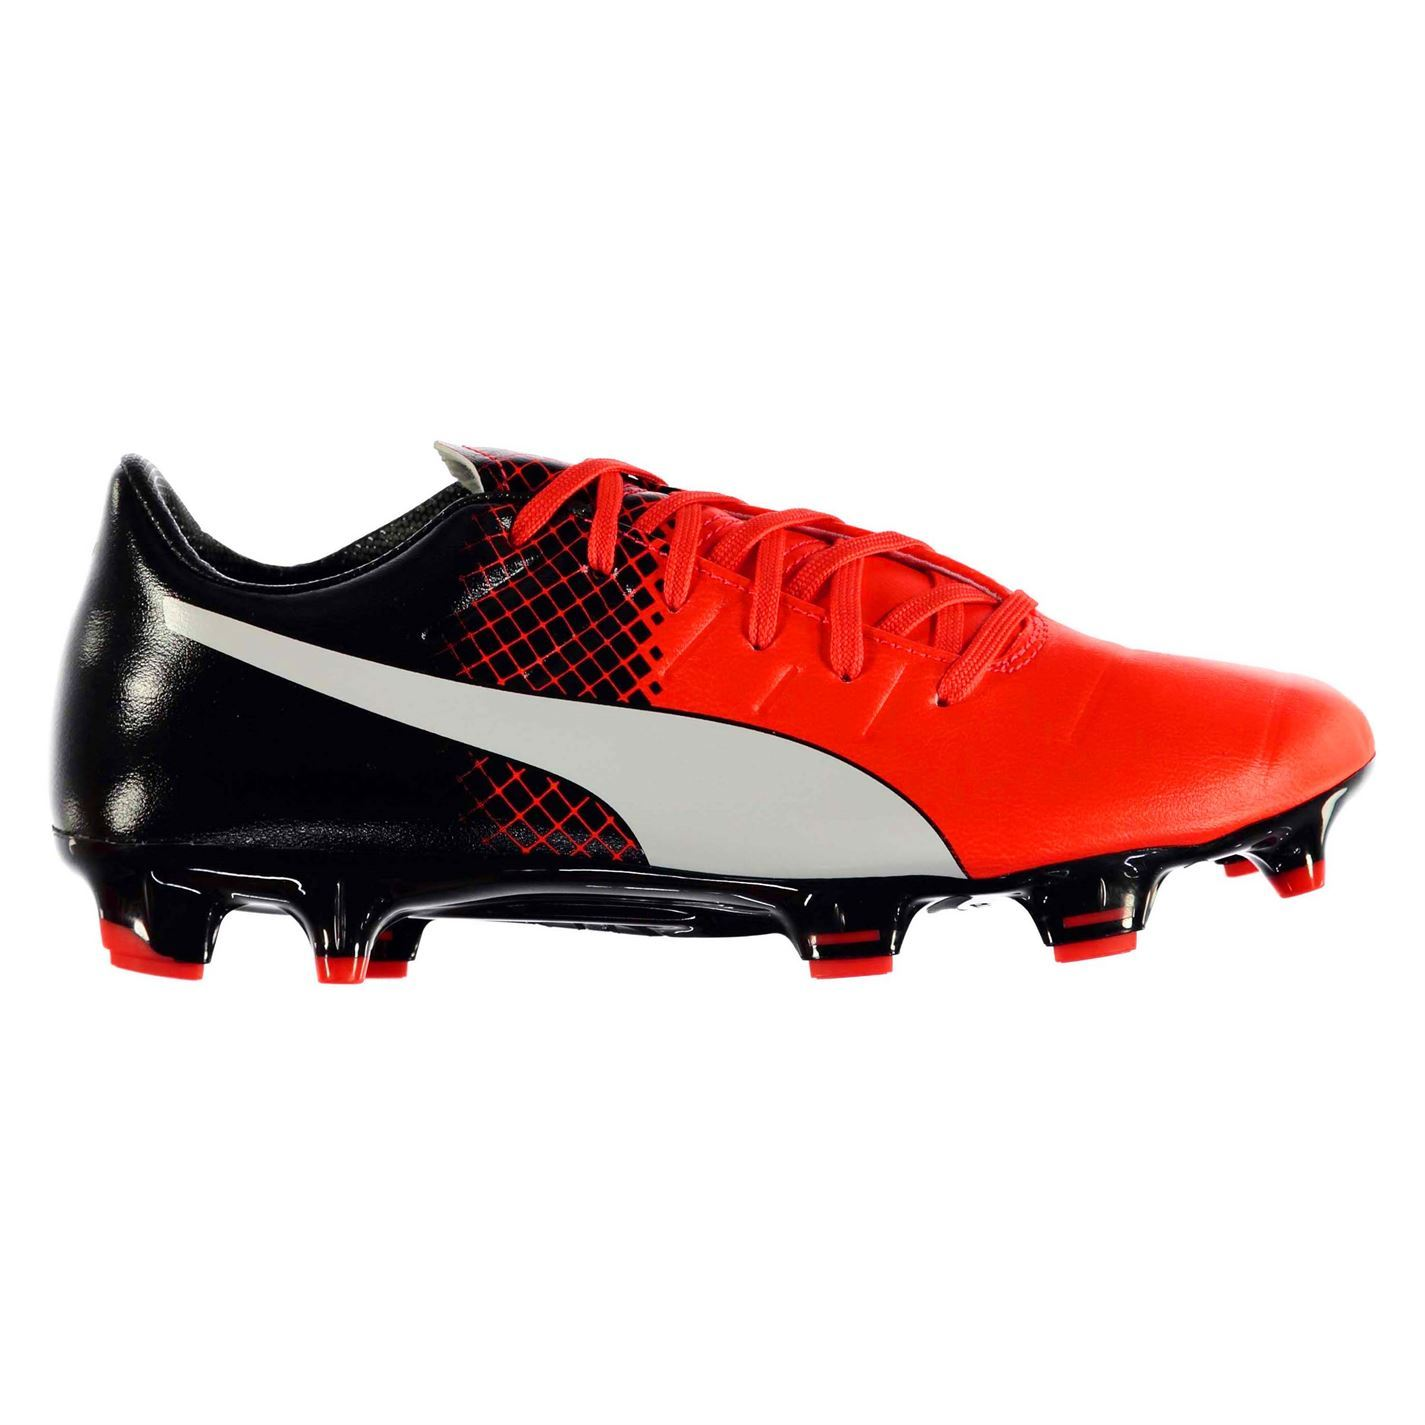 f4cd8929ea3b Puma Evo Power 3.3 FG Firm Ground Football Boots Mens Rd/Blk Soccer Cleats  Shoes